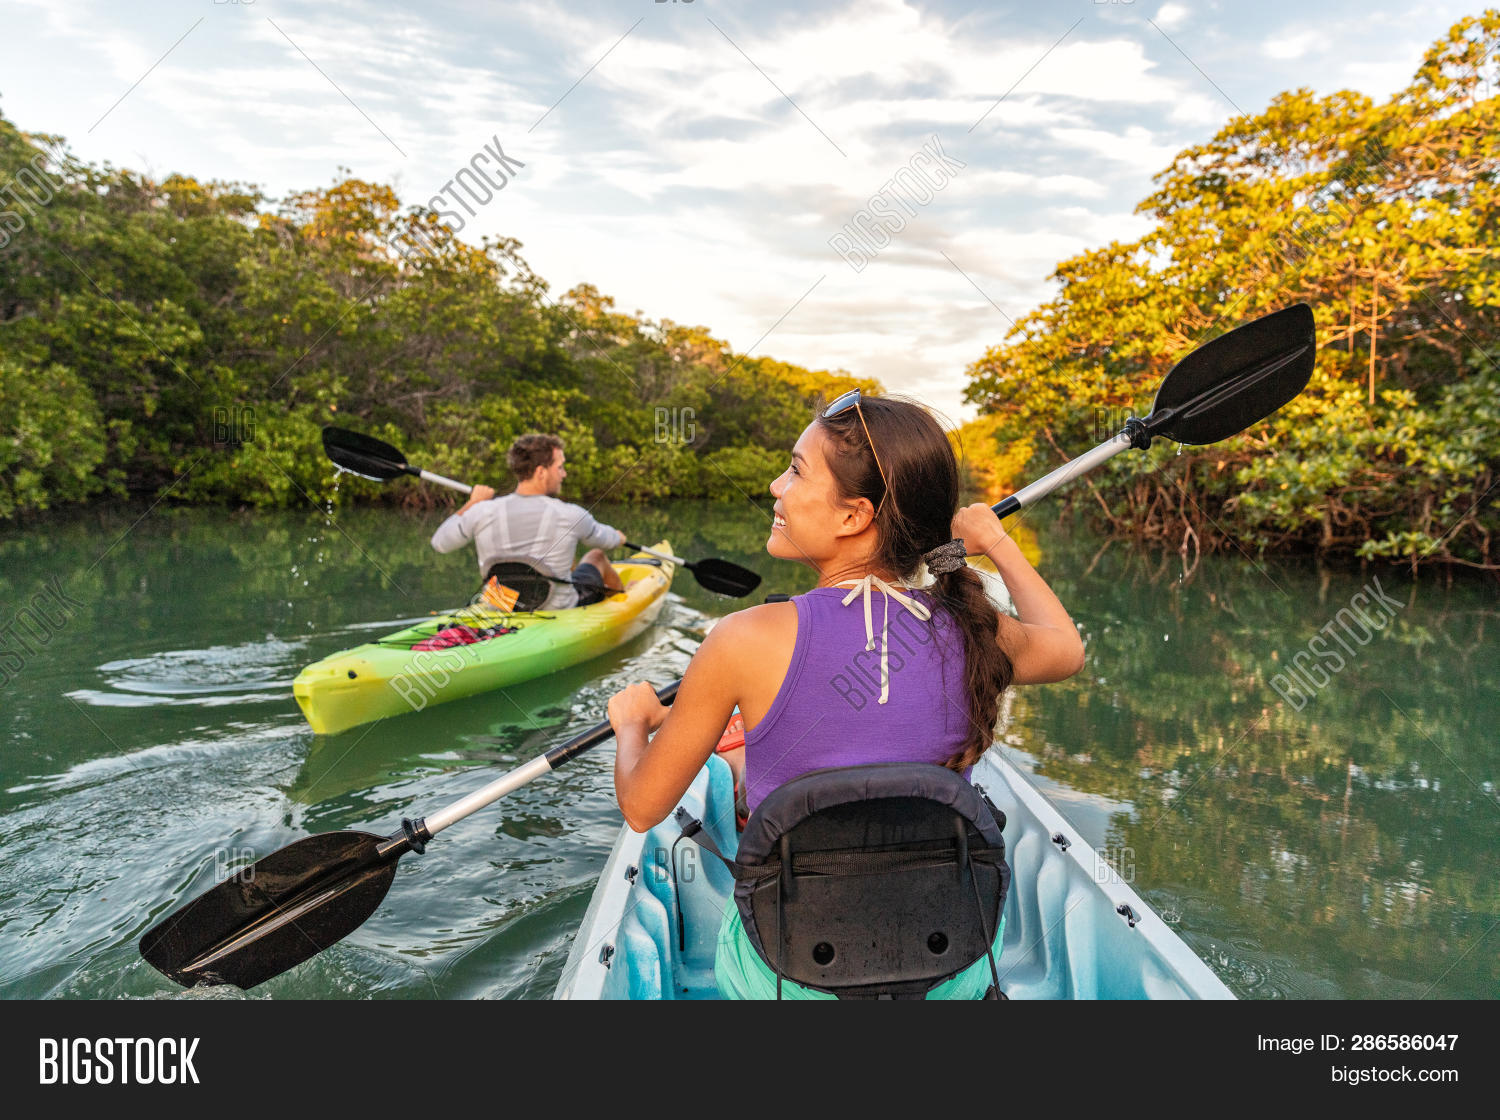 active,activity,adventure,american,asian,boat,couple,discover,everglades,exercise,florida,fun,girl,happy,holidays,islamorada,kayak,kayakers,kayaking,kayaks,keys,landscape,lifestyle,man,mangrove,national,nature,ocean,paddle,park,people,person,river,sea,sport,summer,swamp,touring,tourism,tourists,travel,two,usa,vacation,water,watersport,wildlife,woman,young